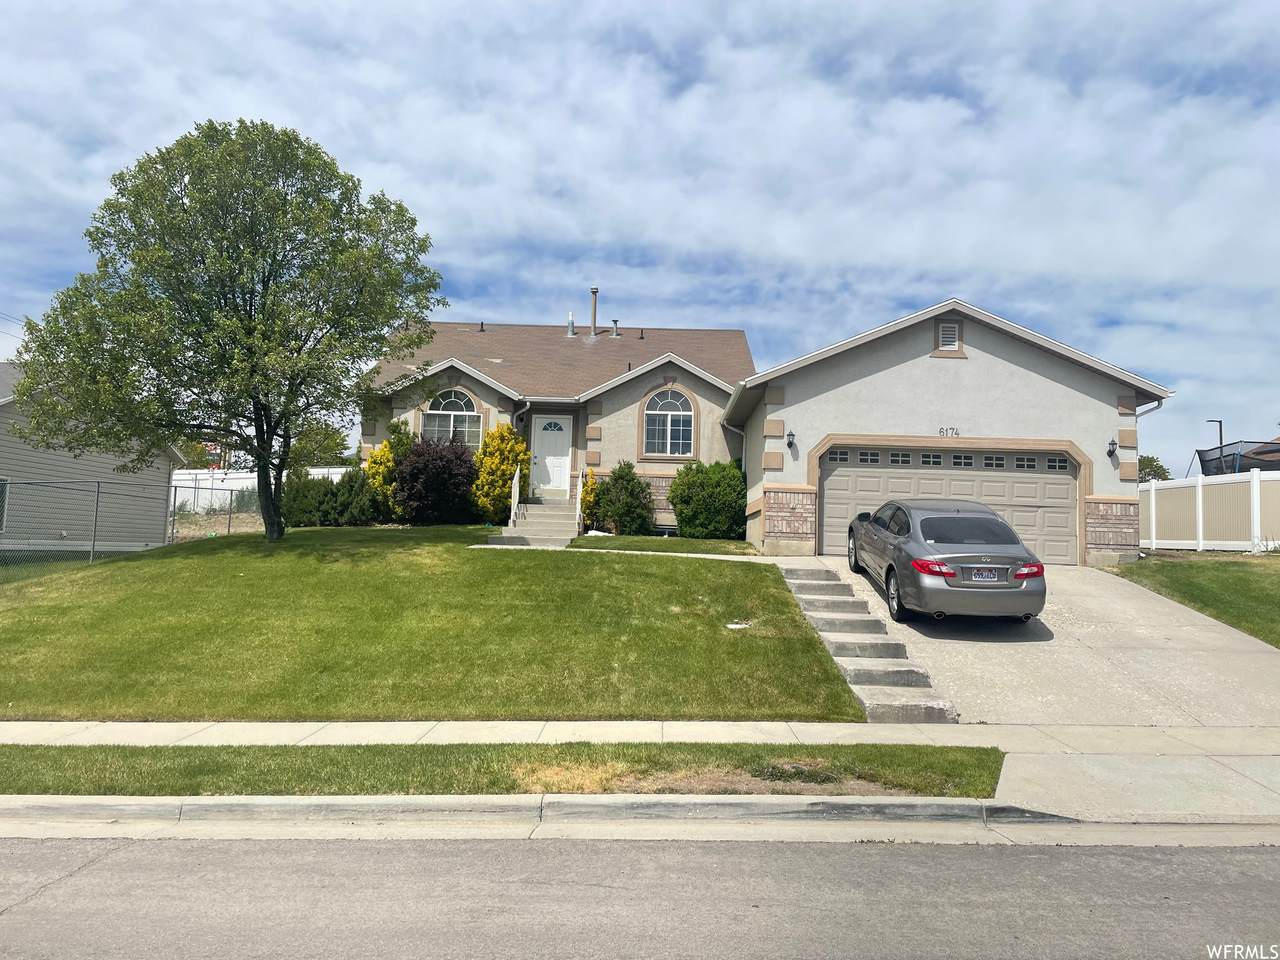 6174 Dewdrops Dr - Photo 1